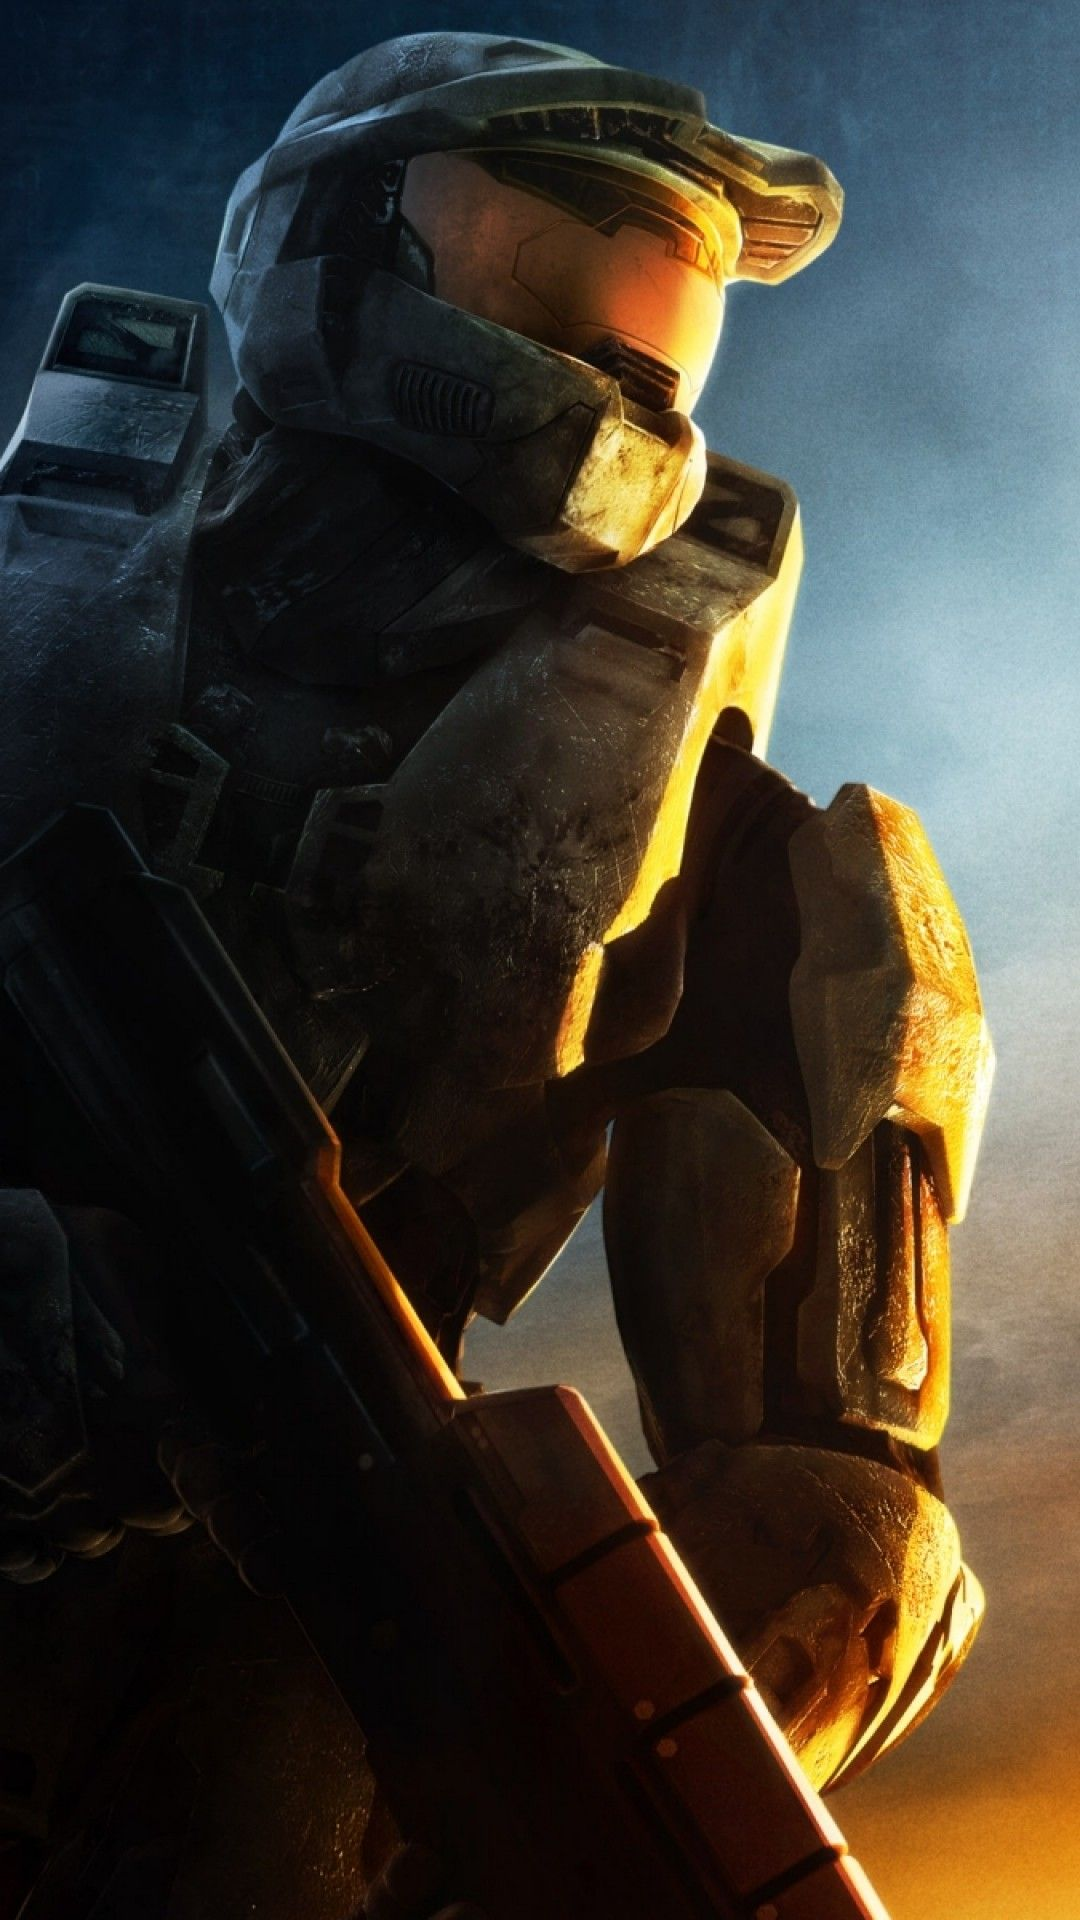 Pin by Wallpapers Ideas on Video Games Halo backgrounds